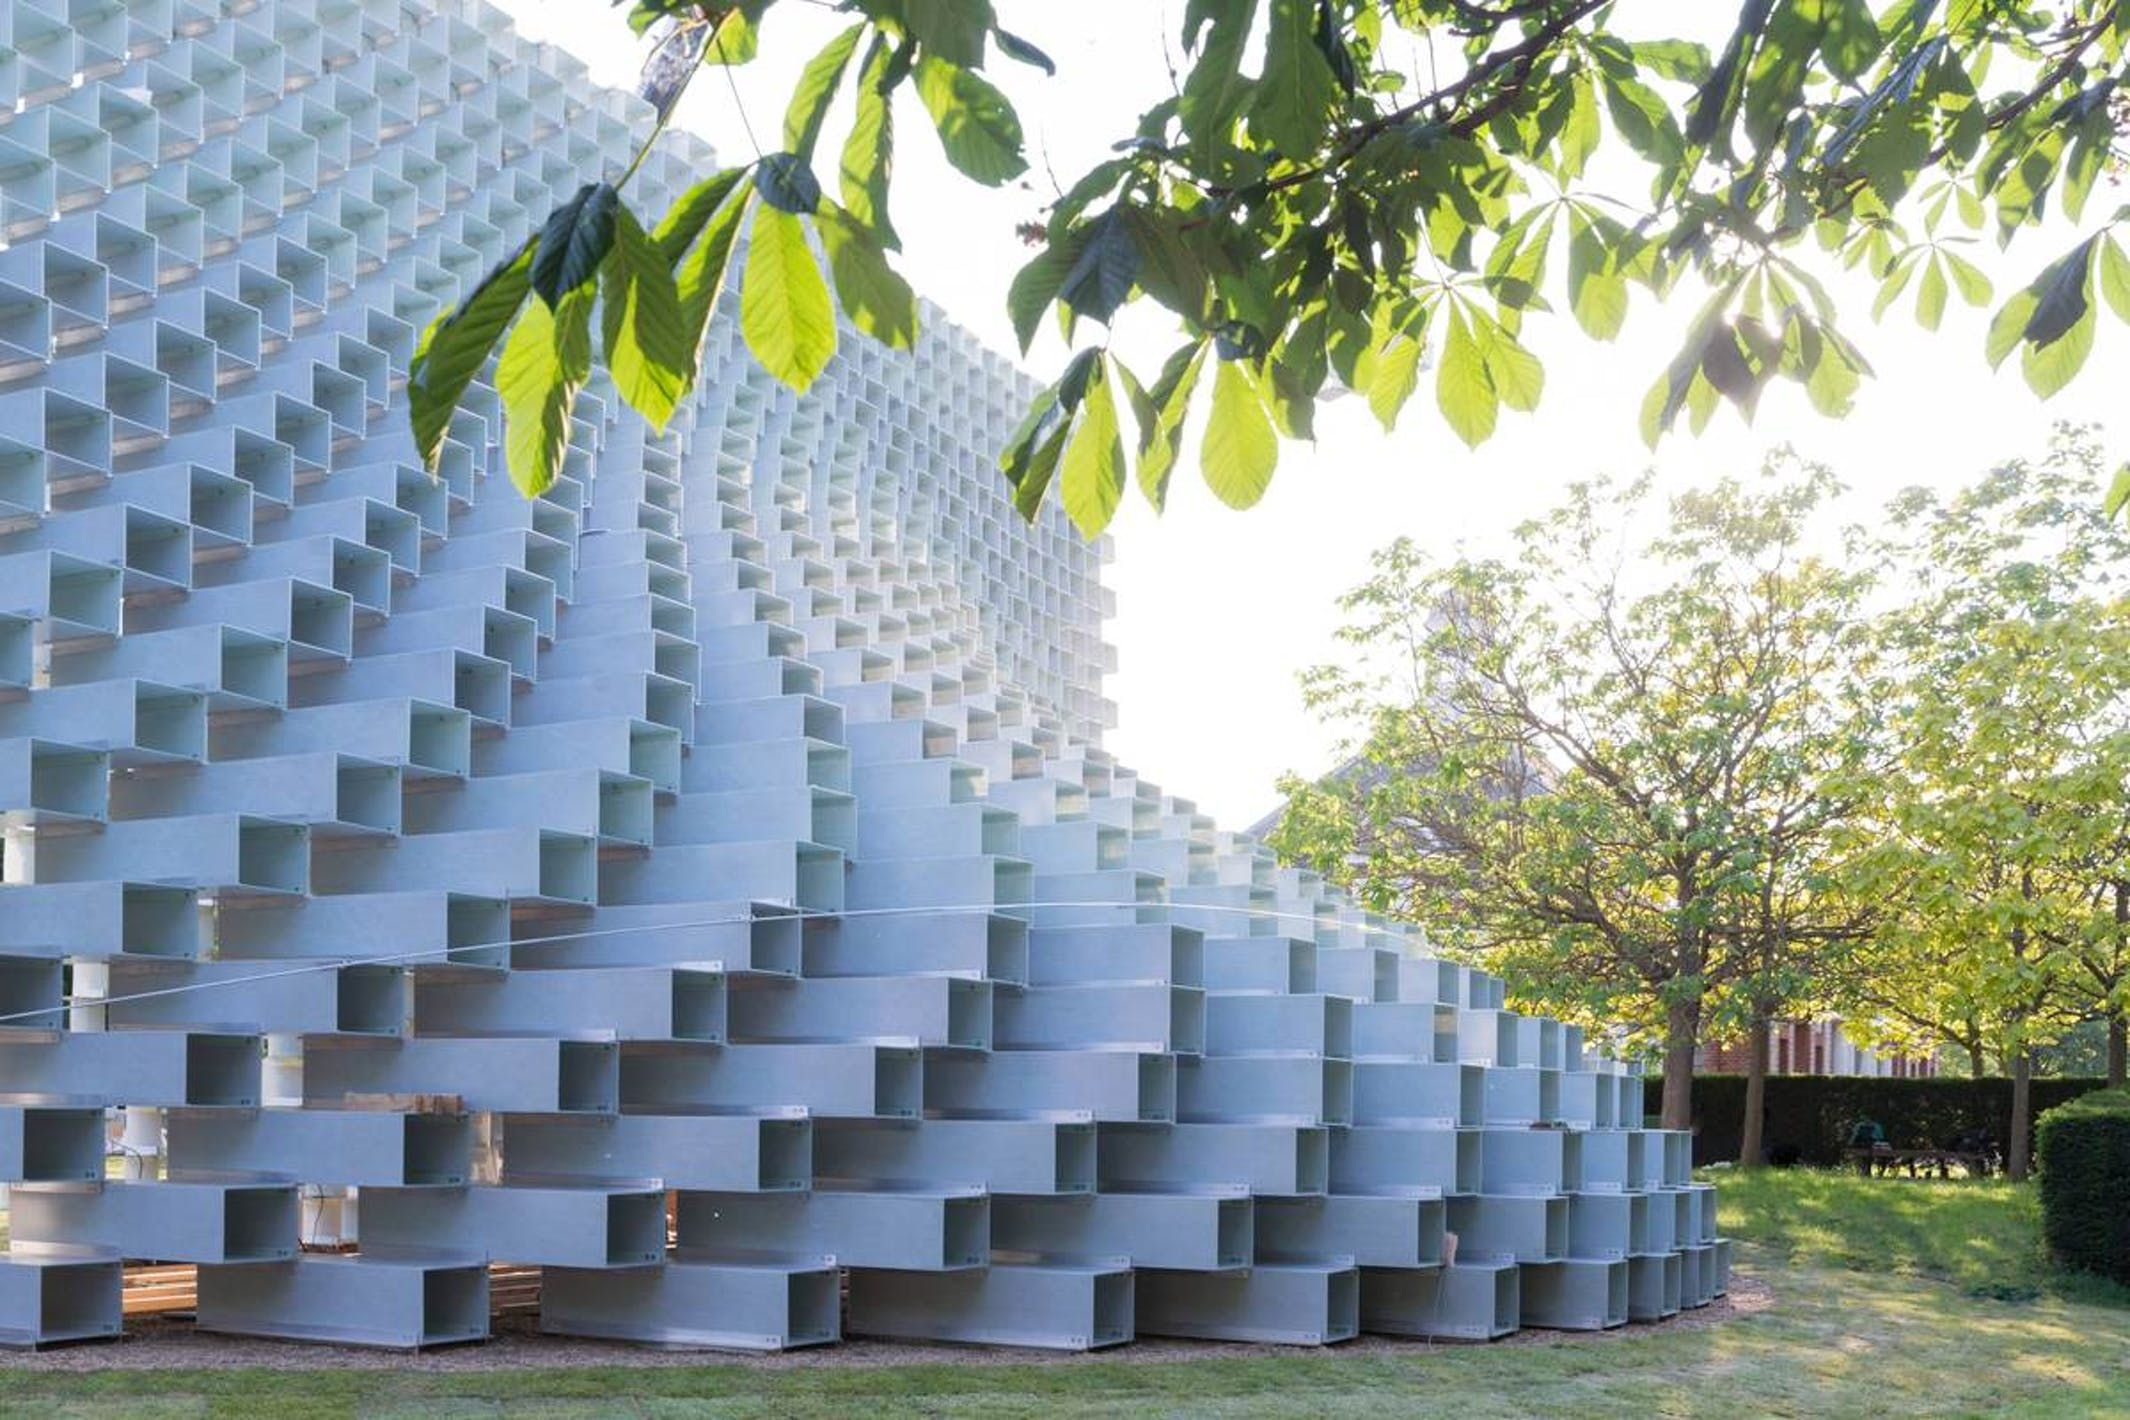 Big S 2016 Serpentine Pavilion And The New Summer Houses Make Their Public Debut In 2020 Pavilion Architecture Serpentine Pavillion Architecture